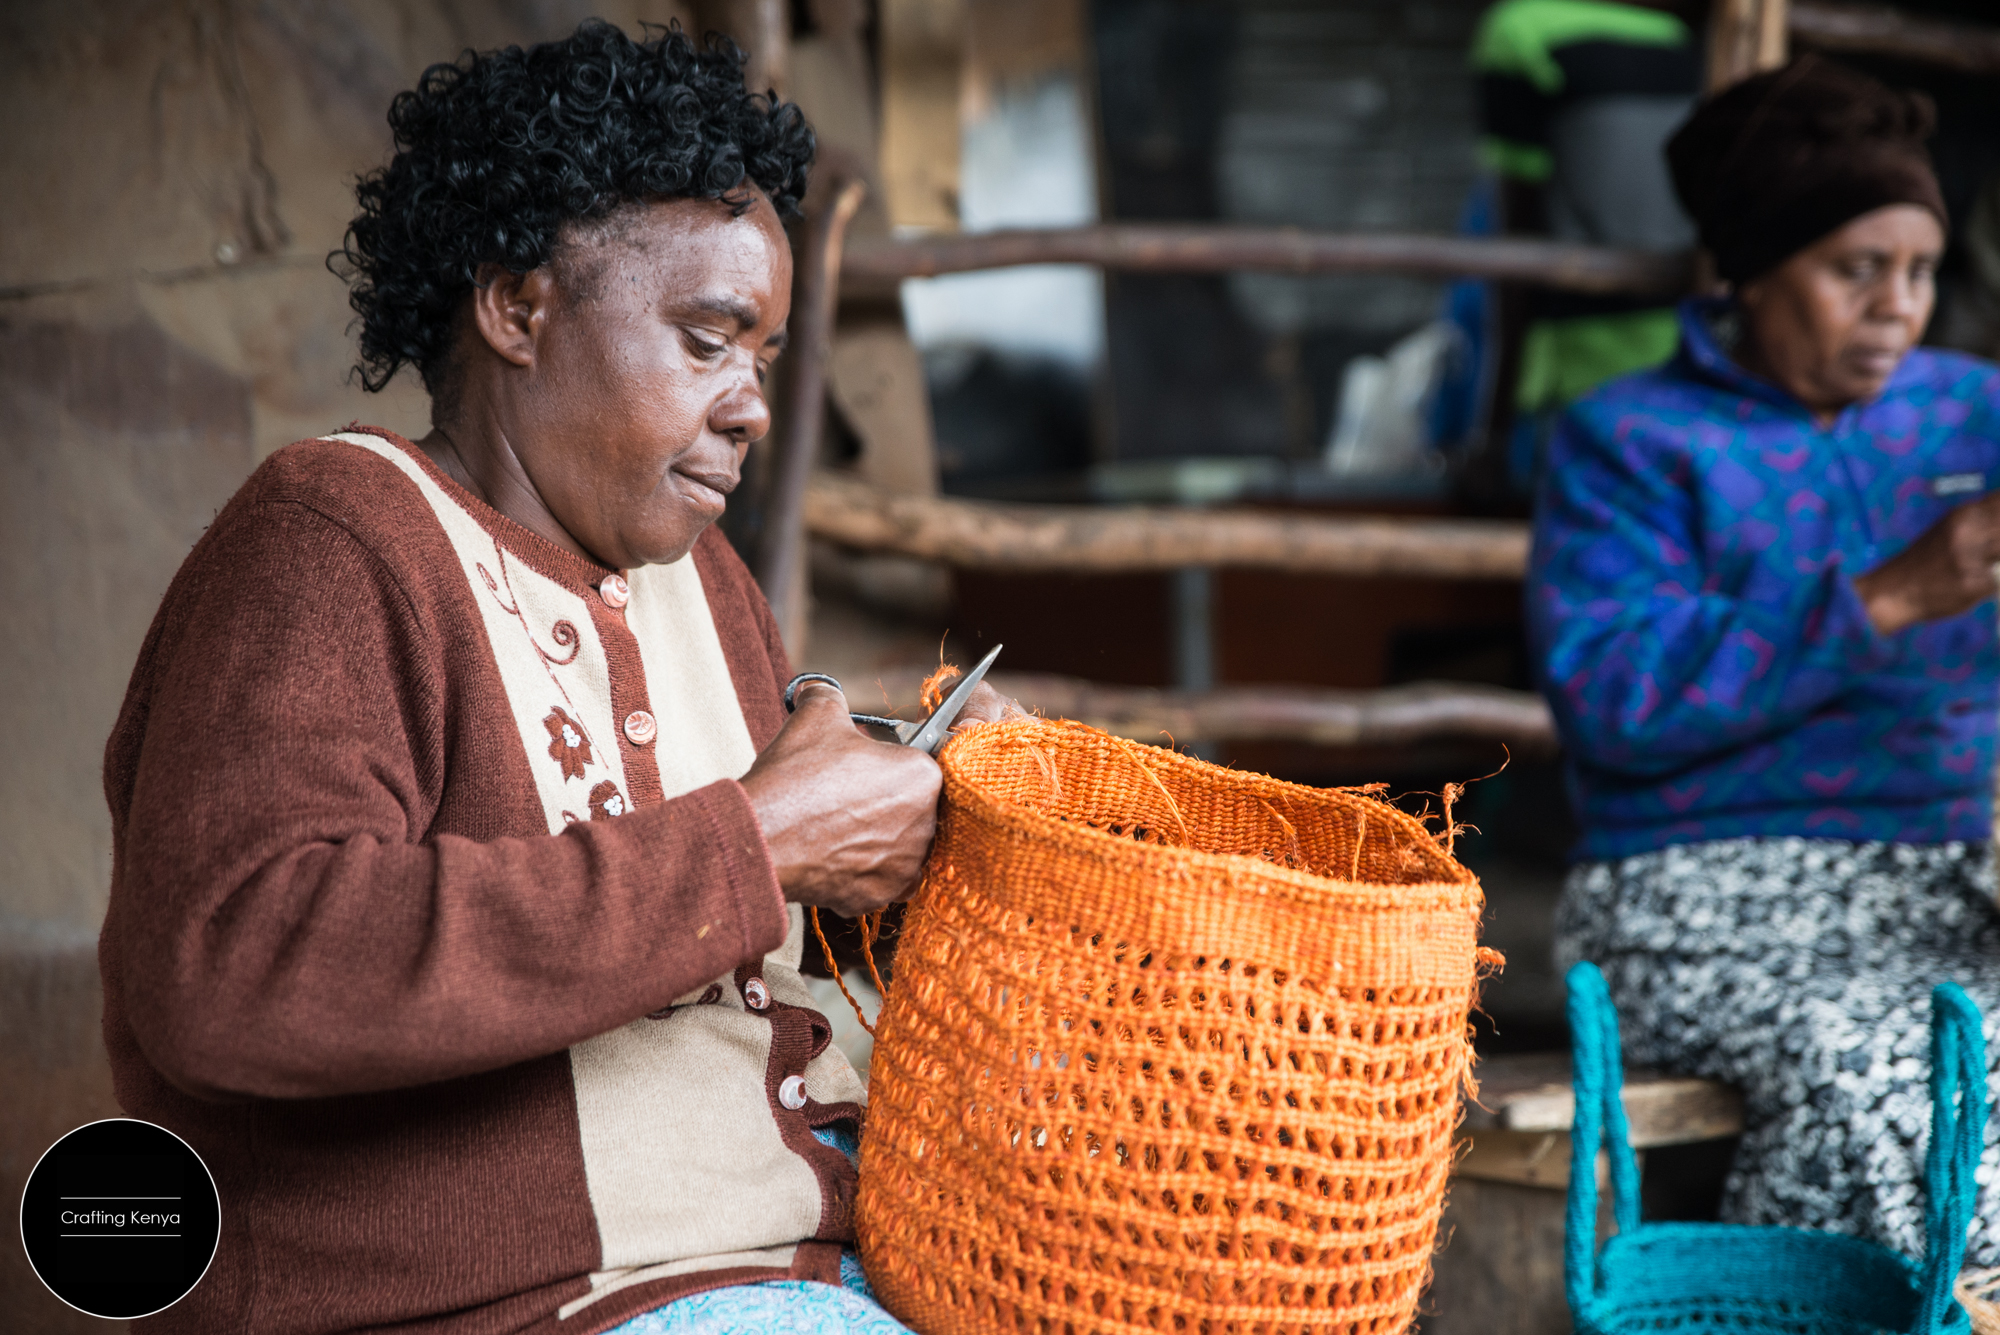 CraftingKenya_2014-09-08_Nairobi_Baskets weaving_014.jpg